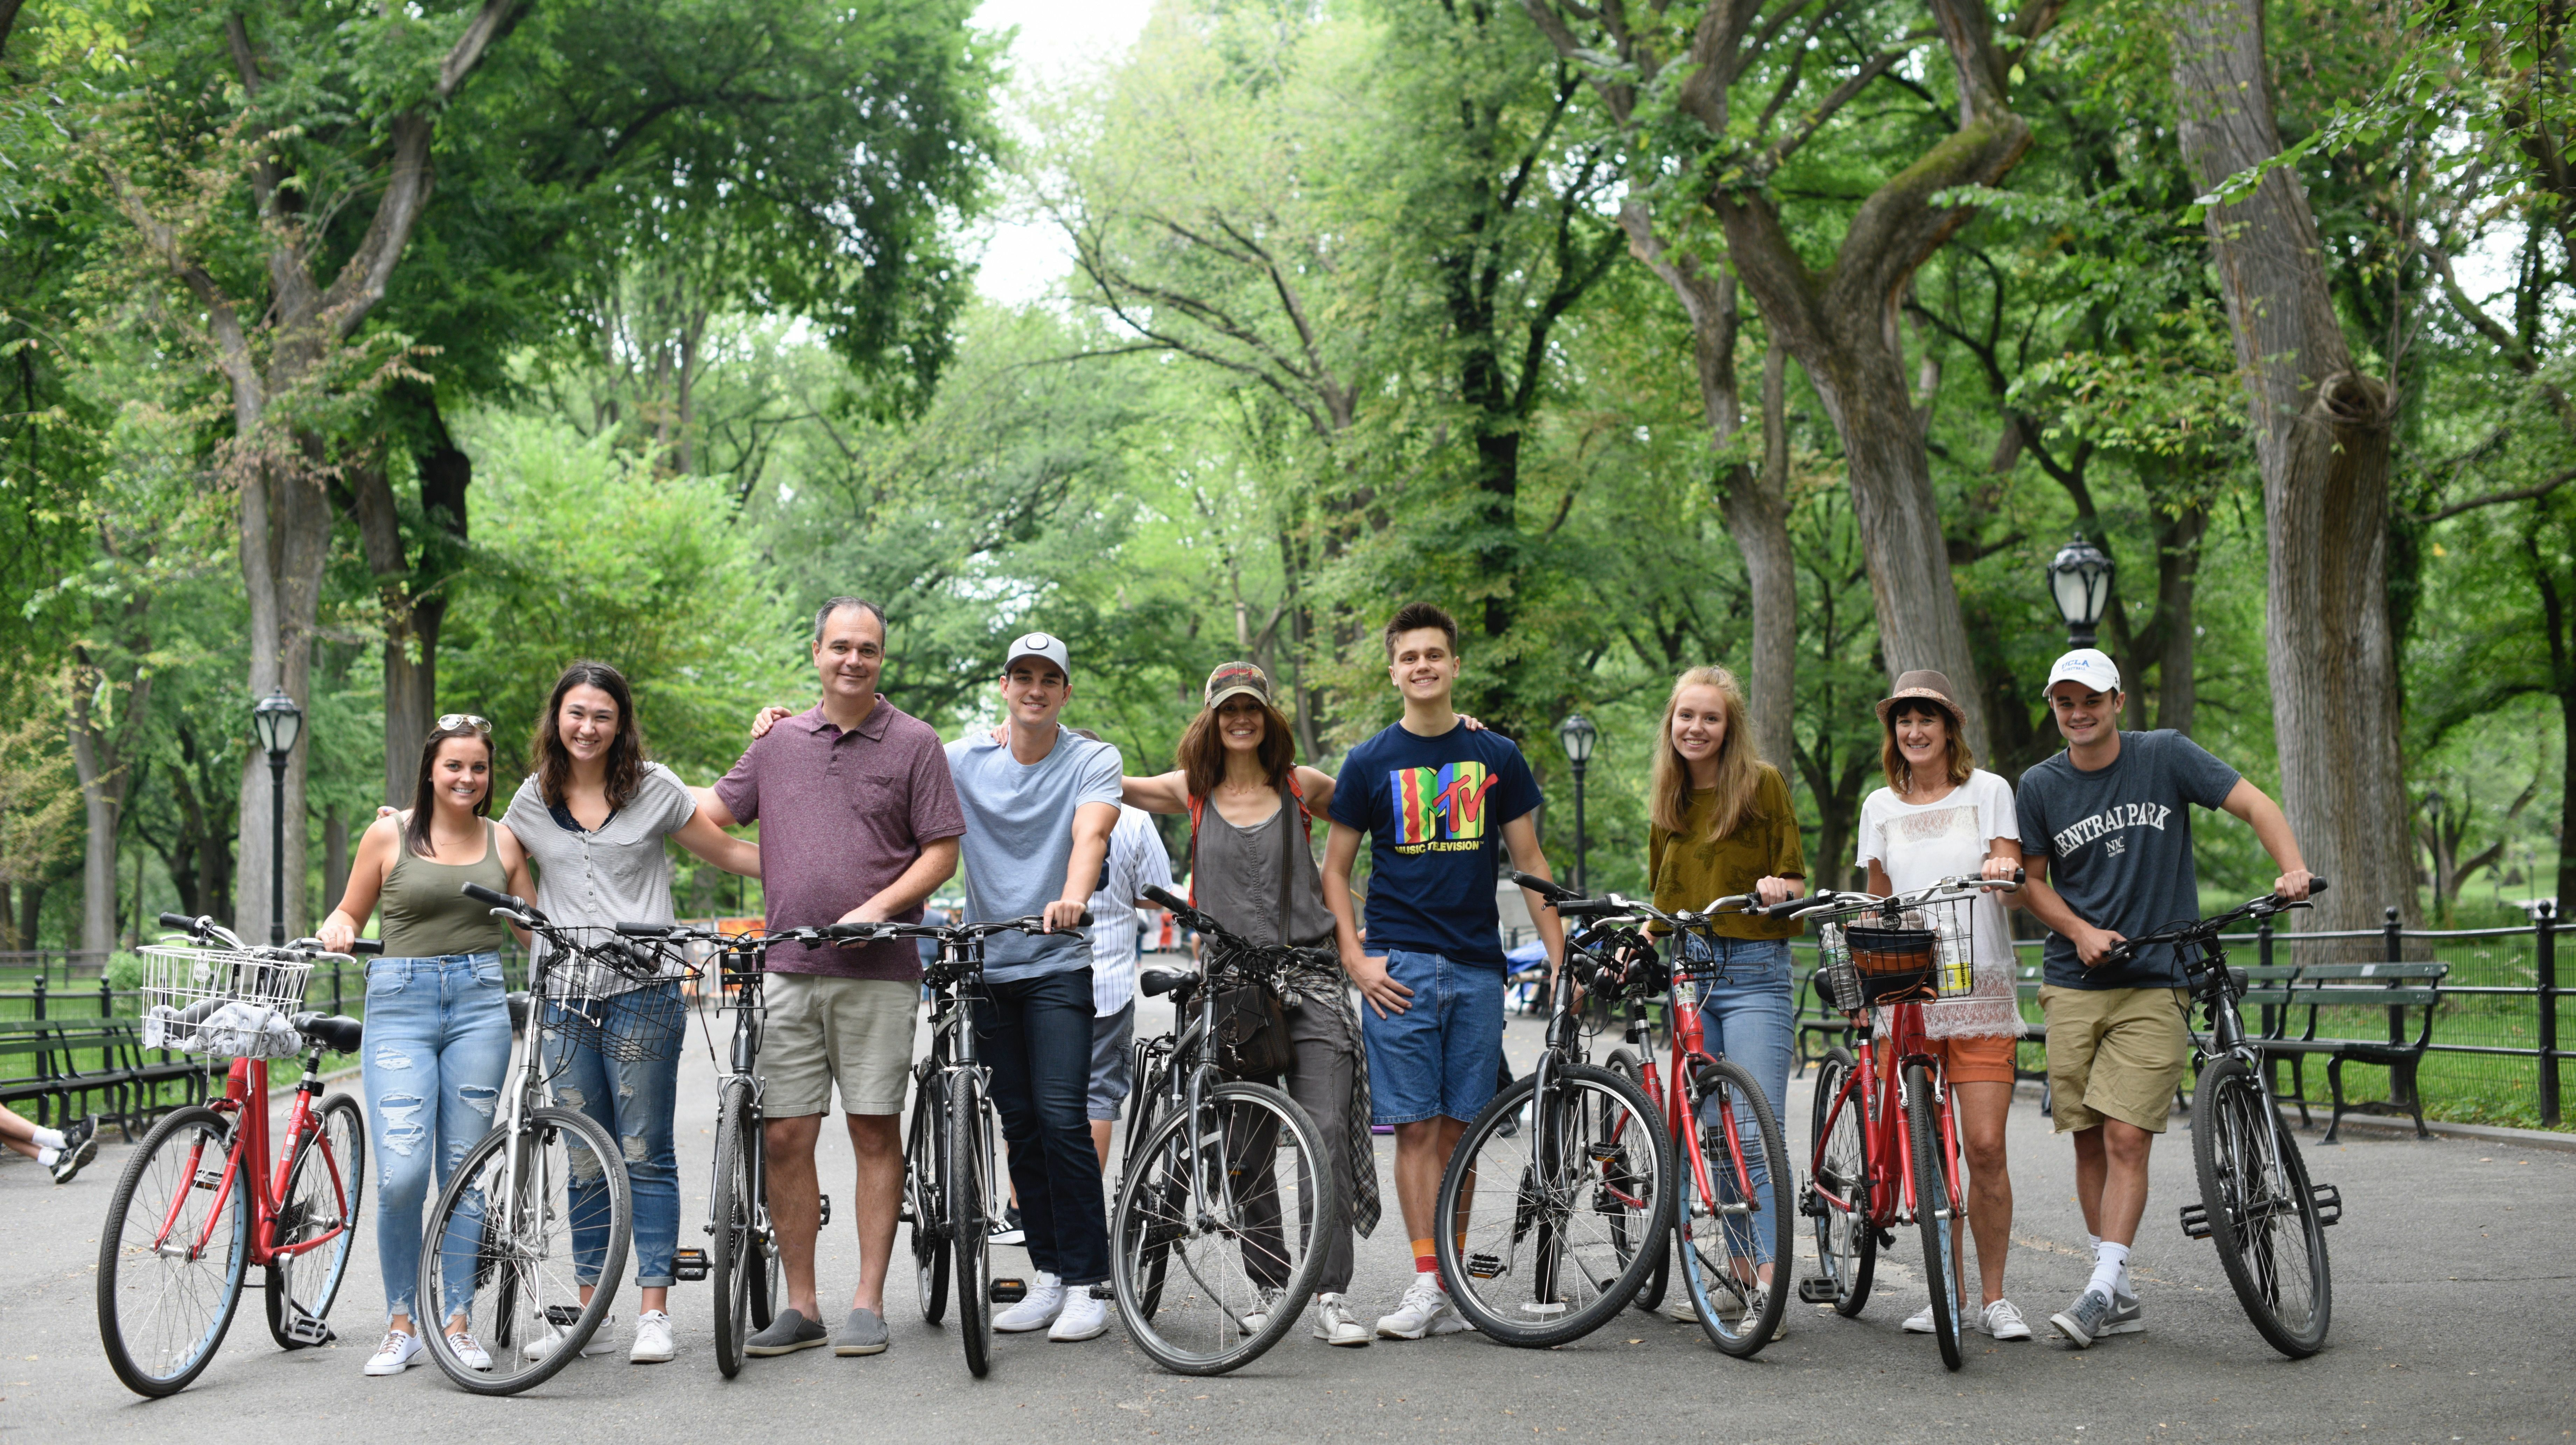 Private Tour of Central Park